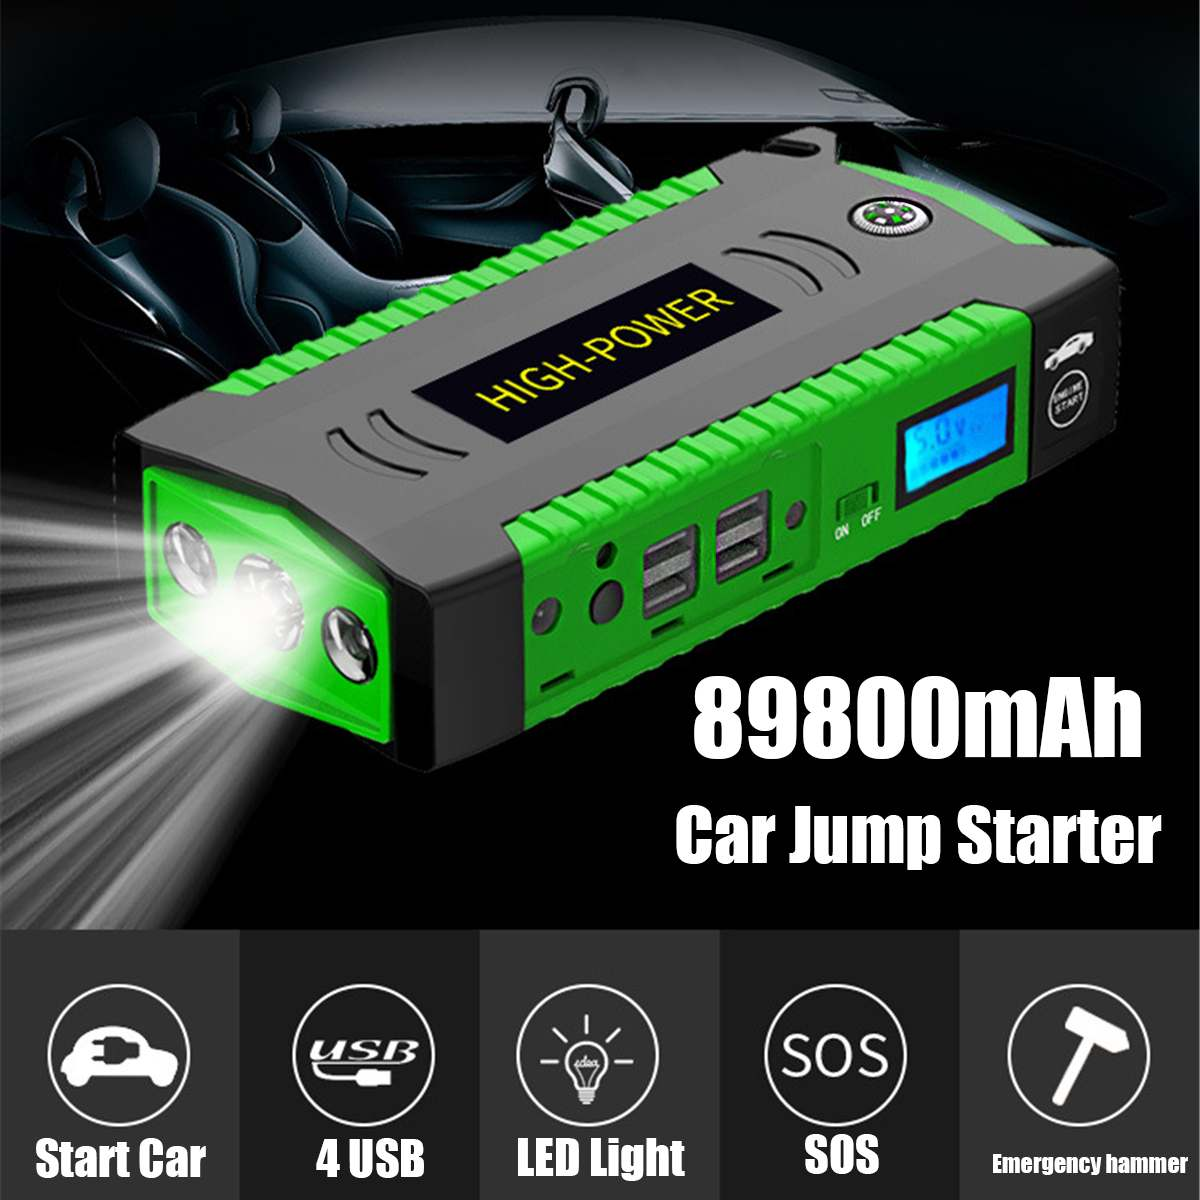 89800mAh 4 USB LCD Portable Car Jump Starter Emergency Power Bank Battery Booster Charger 12V Starting Device for Petrol Diesels